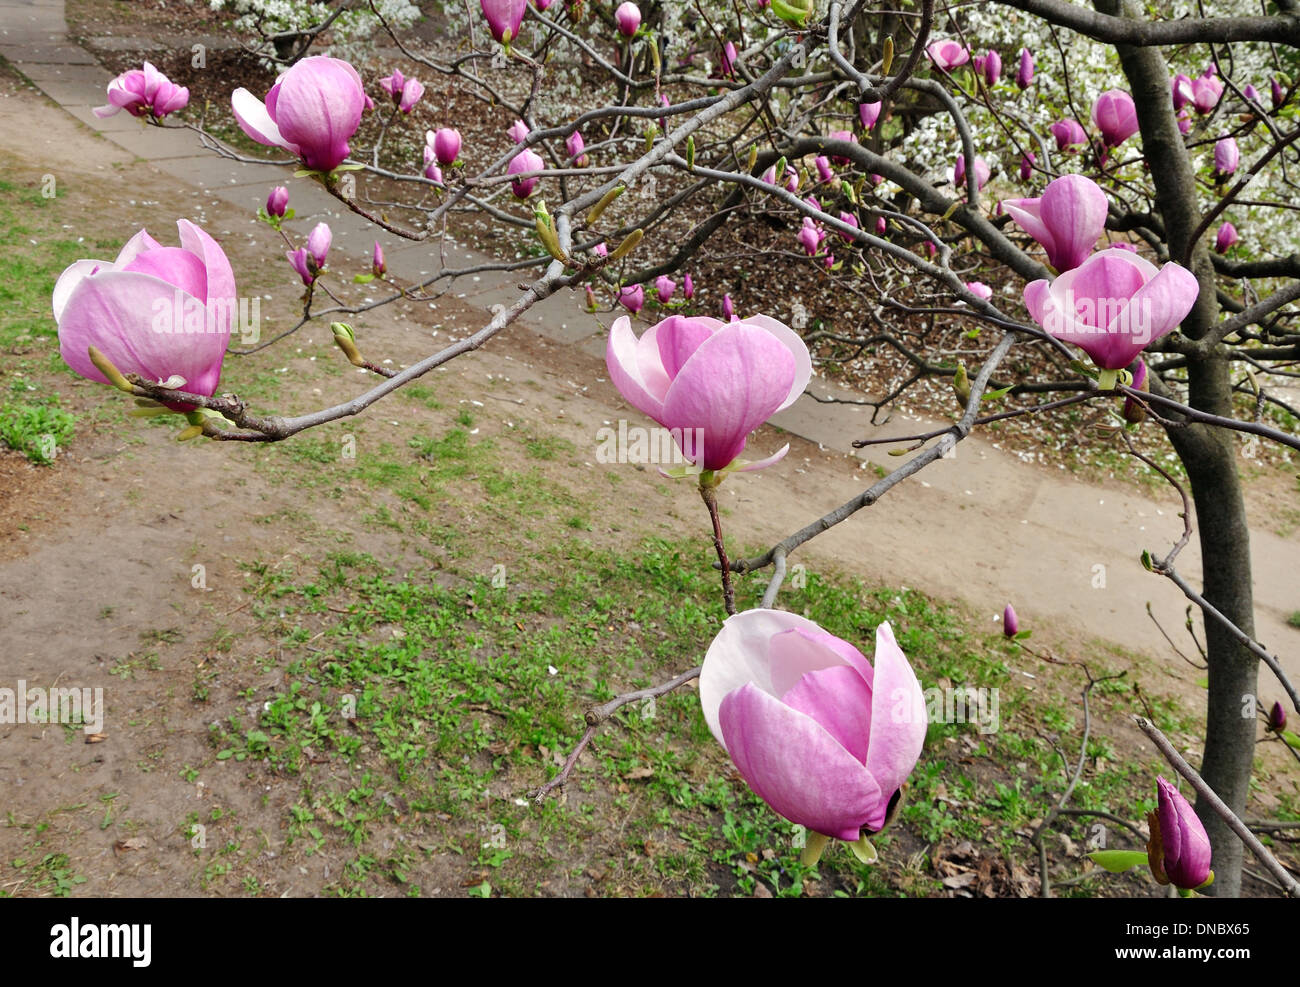 Magnolia tree with big pink flowers on the branches stock photo magnolia tree with big pink flowers on the branches mightylinksfo